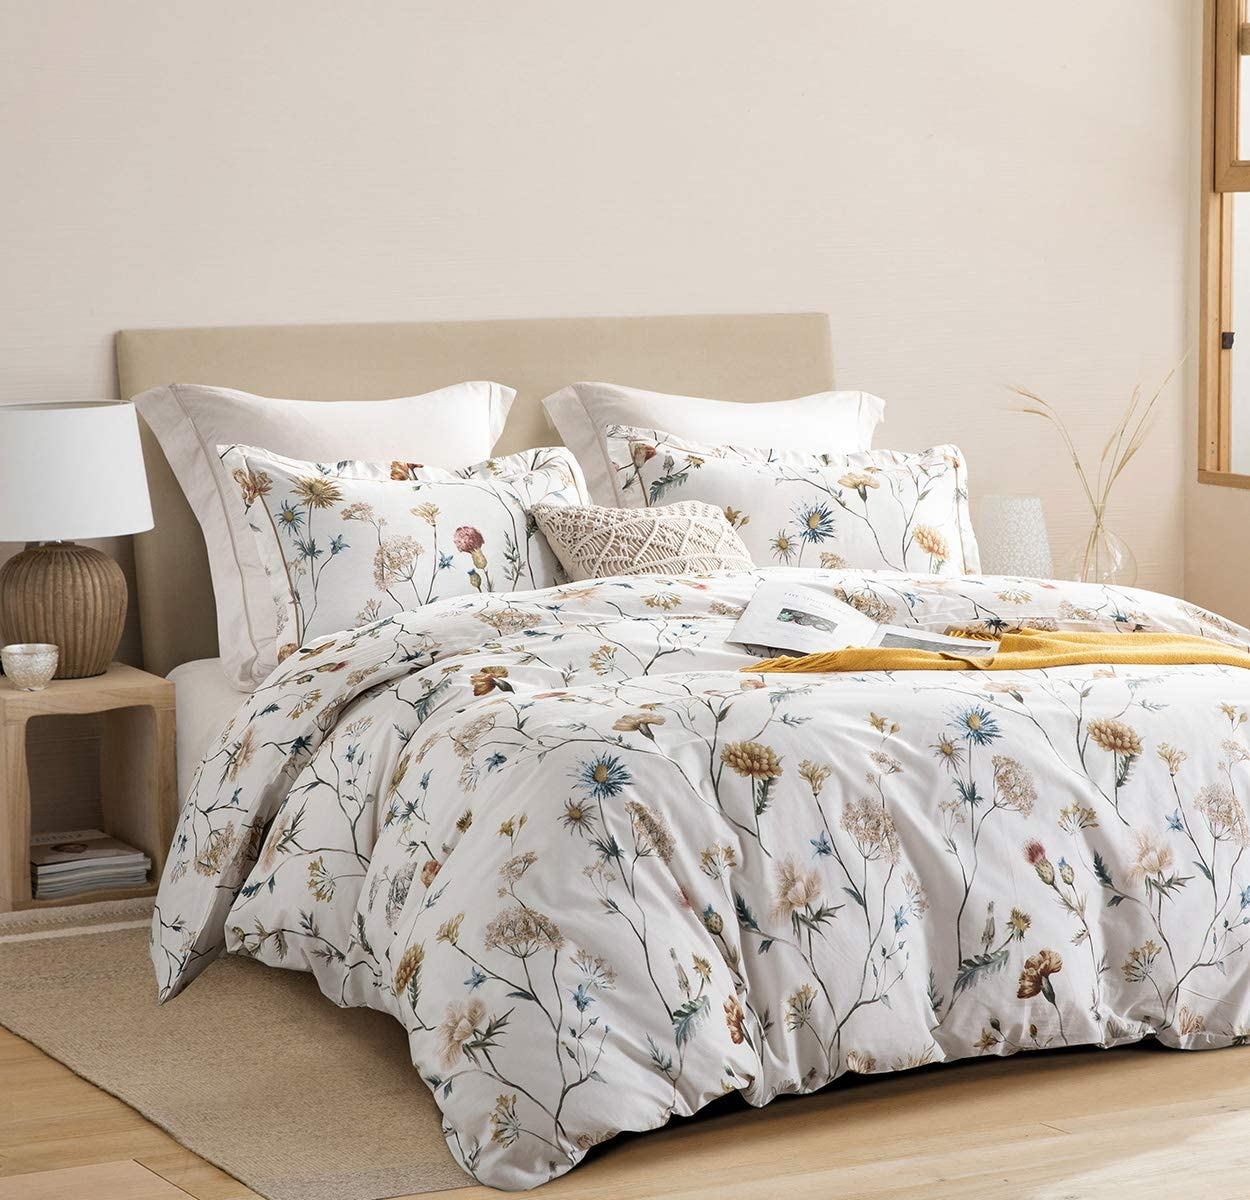 SLEEPBELLA Duvet Cover New arrival Twin Yellow Blue Printed Flowers Max 90% OFF on Of